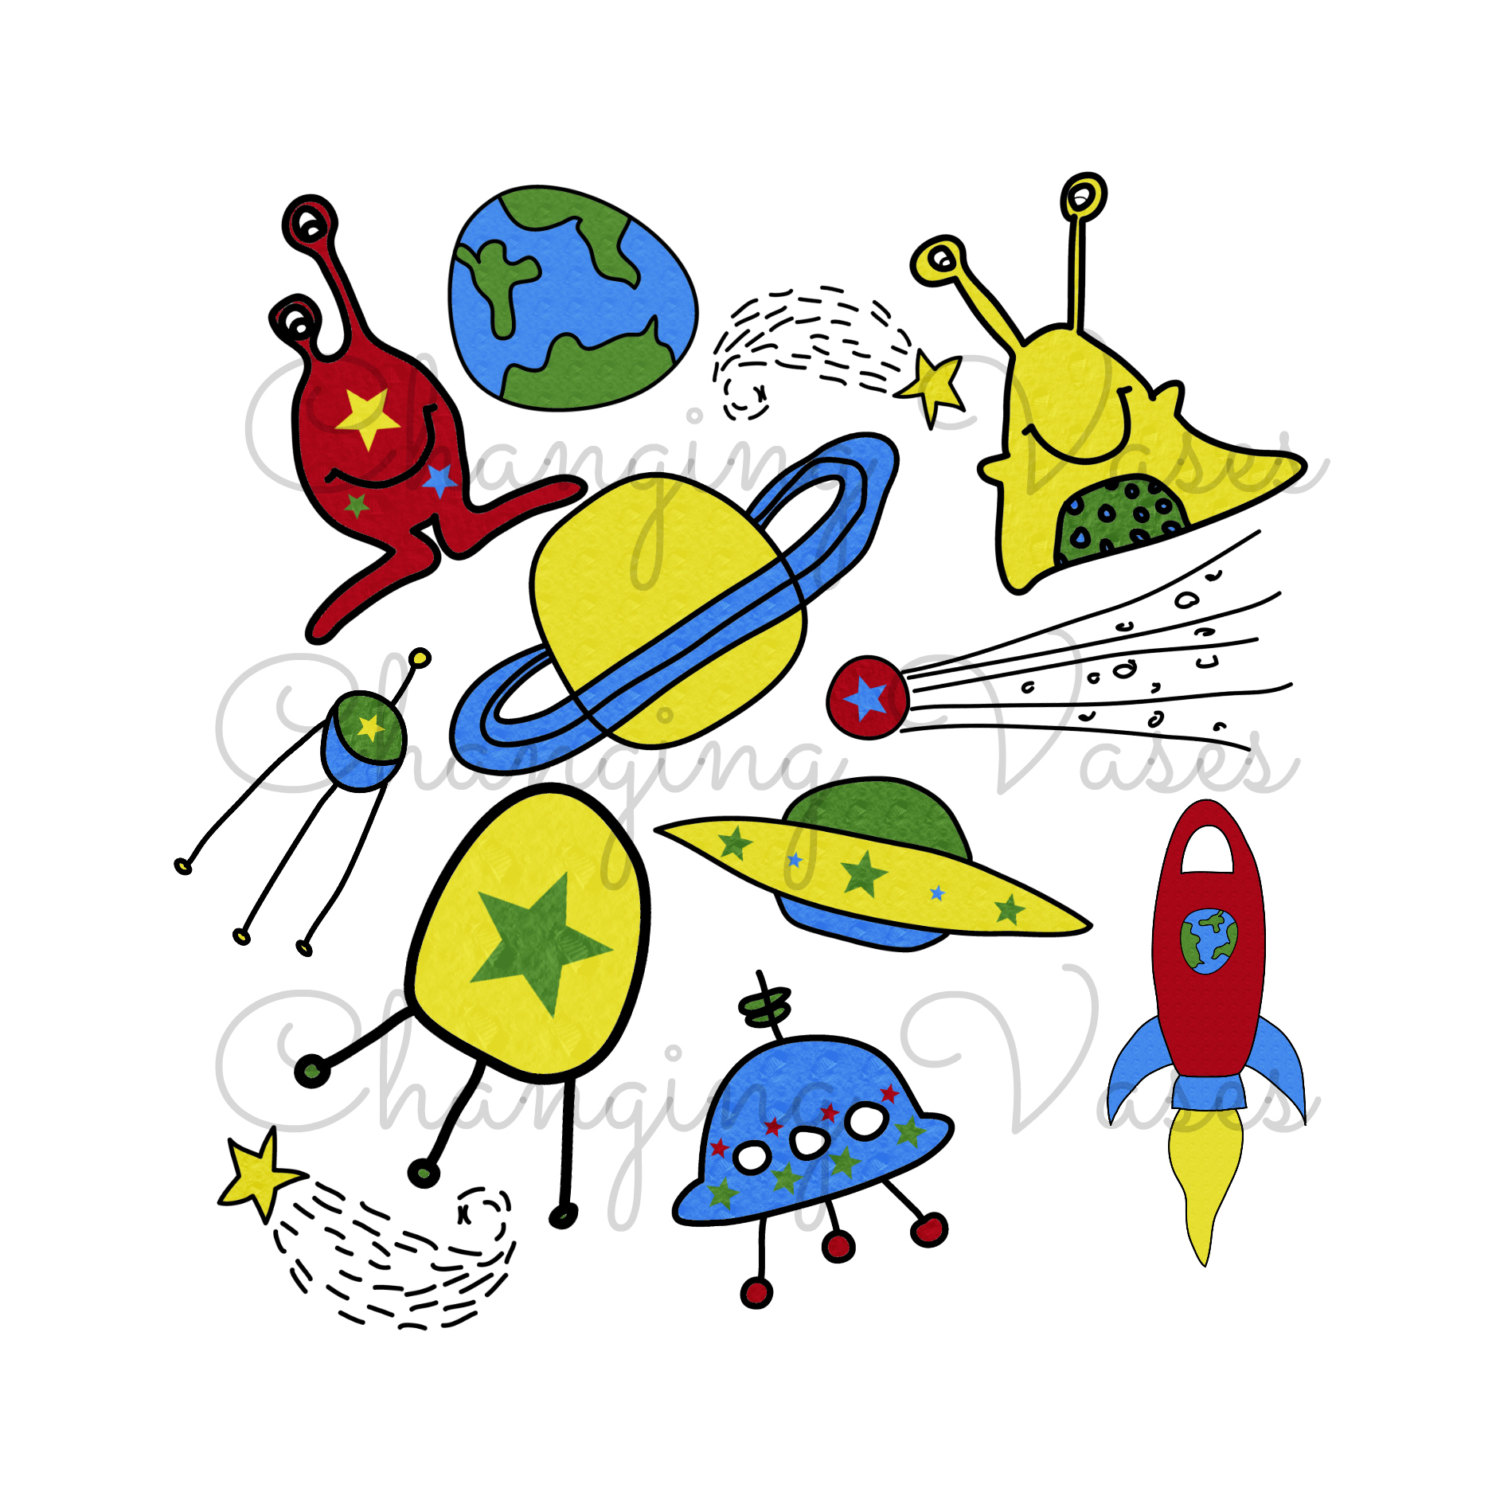 monster clip art spaceship clipart panda free clipart images rh clipartpanda com galaxy clipart free galaxy clipart black and white